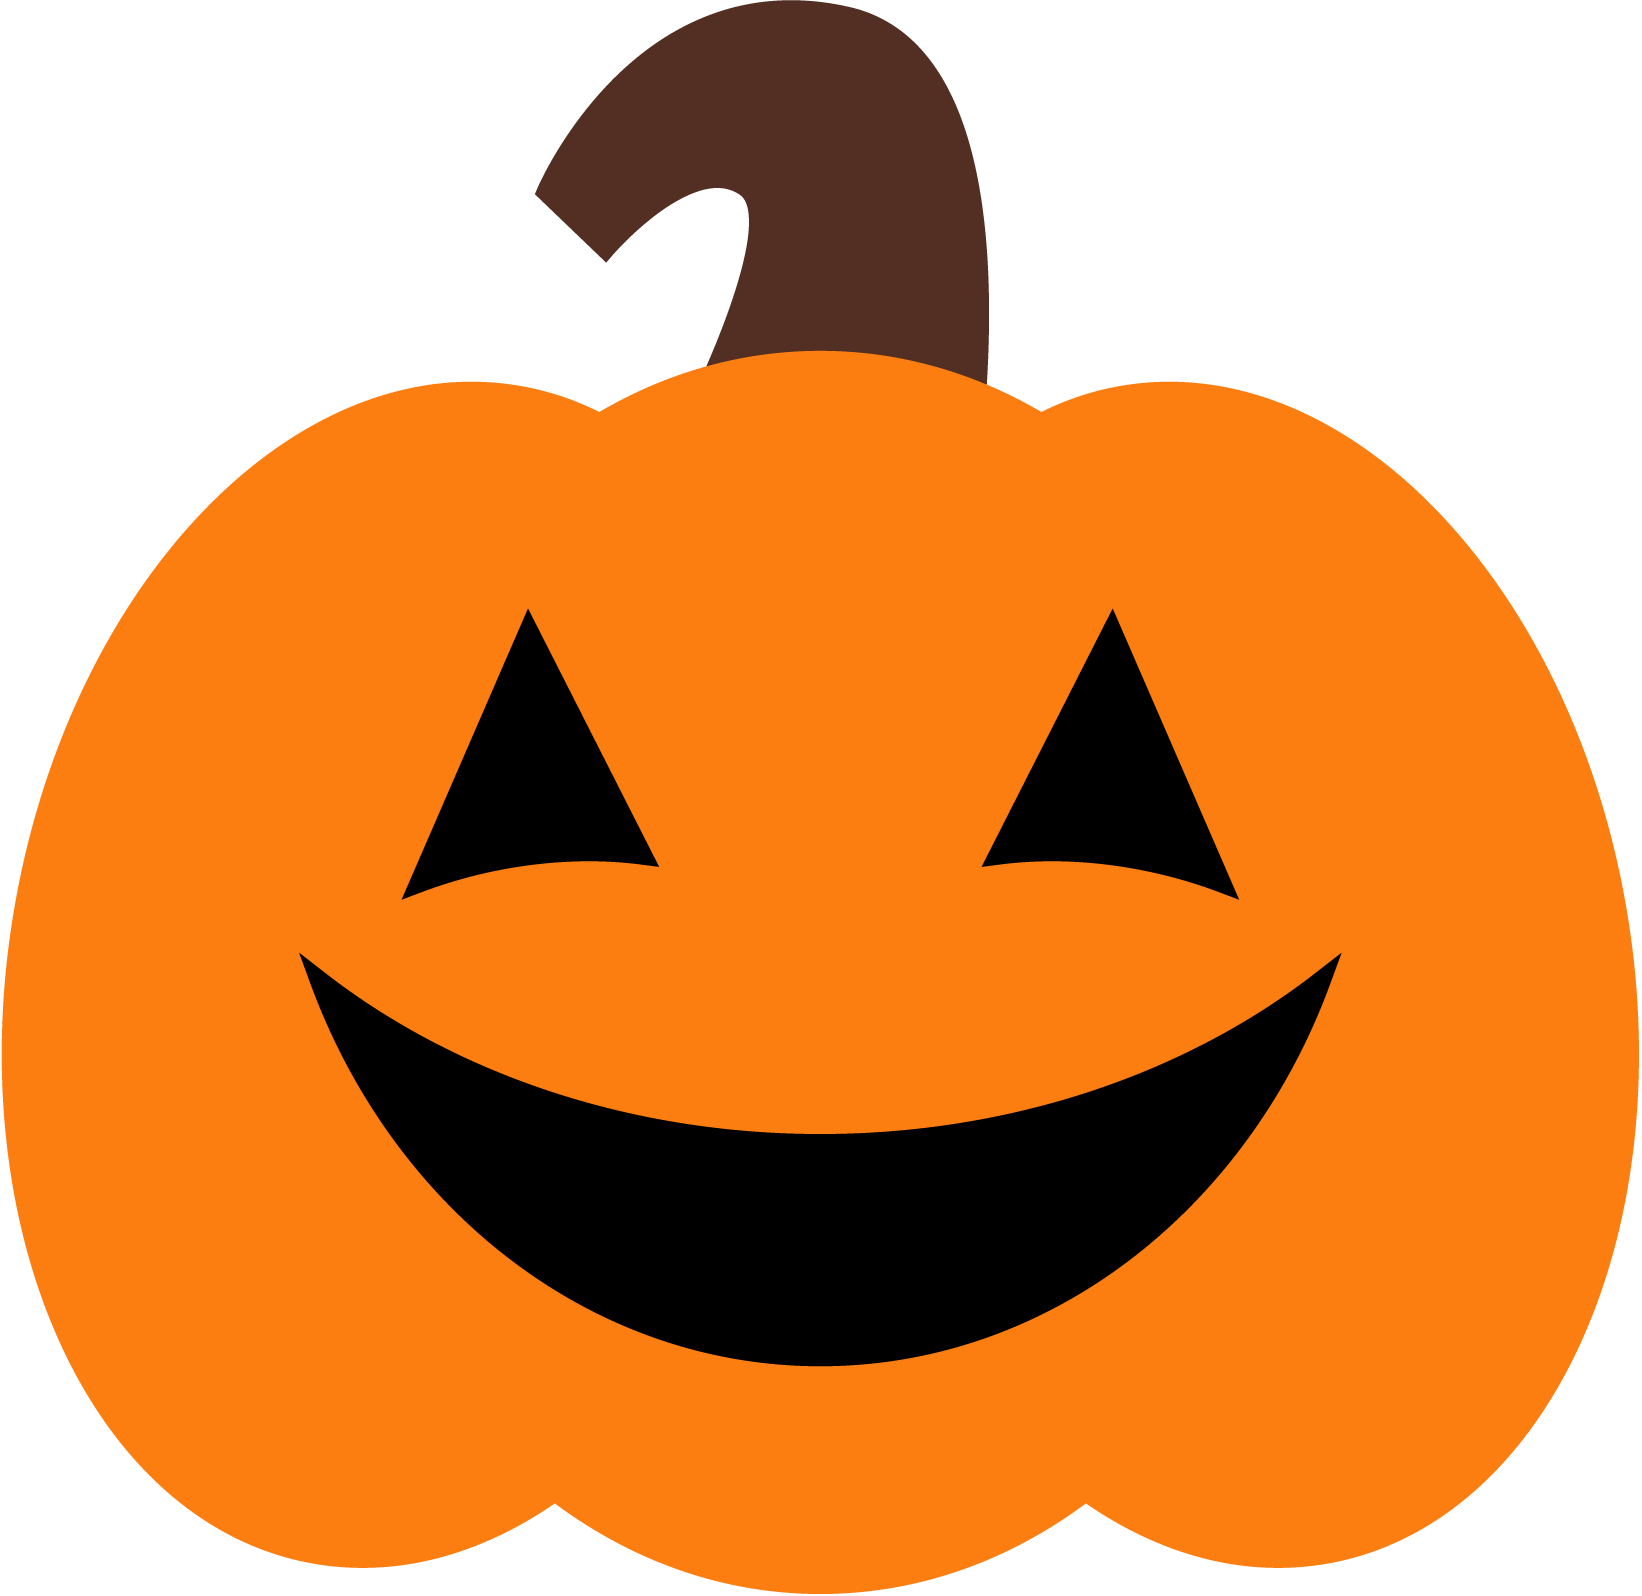 Free Animated Pumpkin Clipart